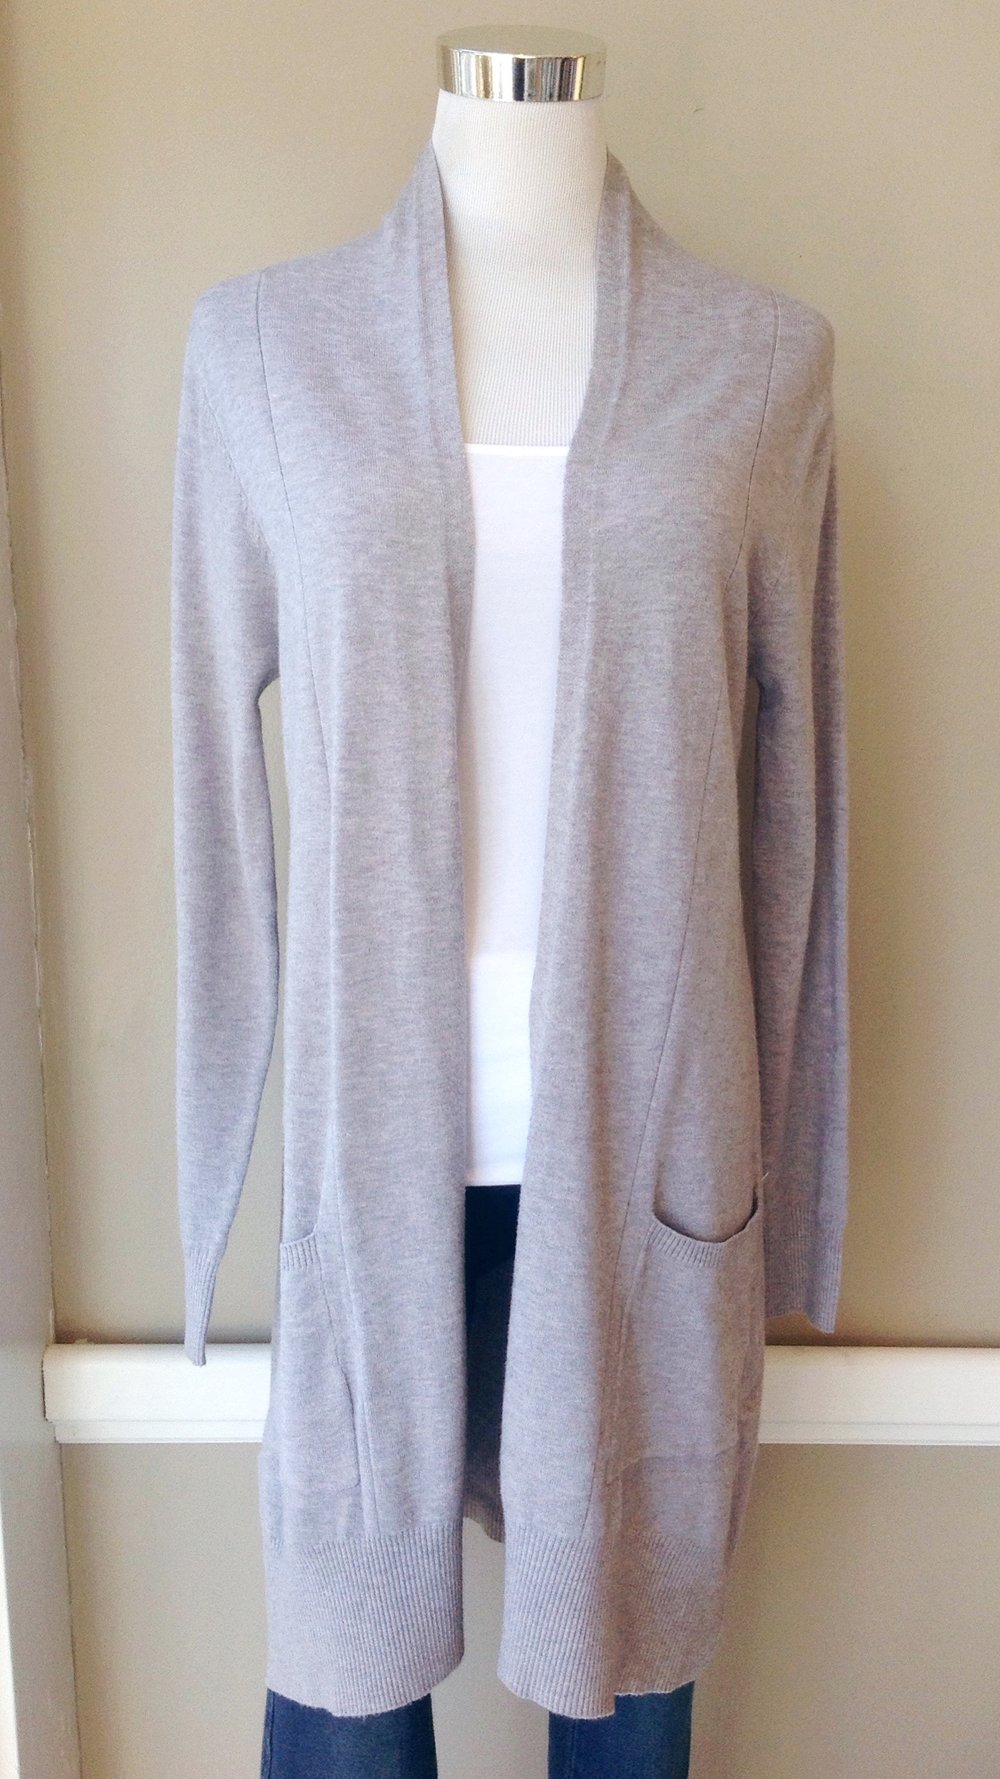 Ultra soft knit cardigan with patch pockets in heather grey, $42